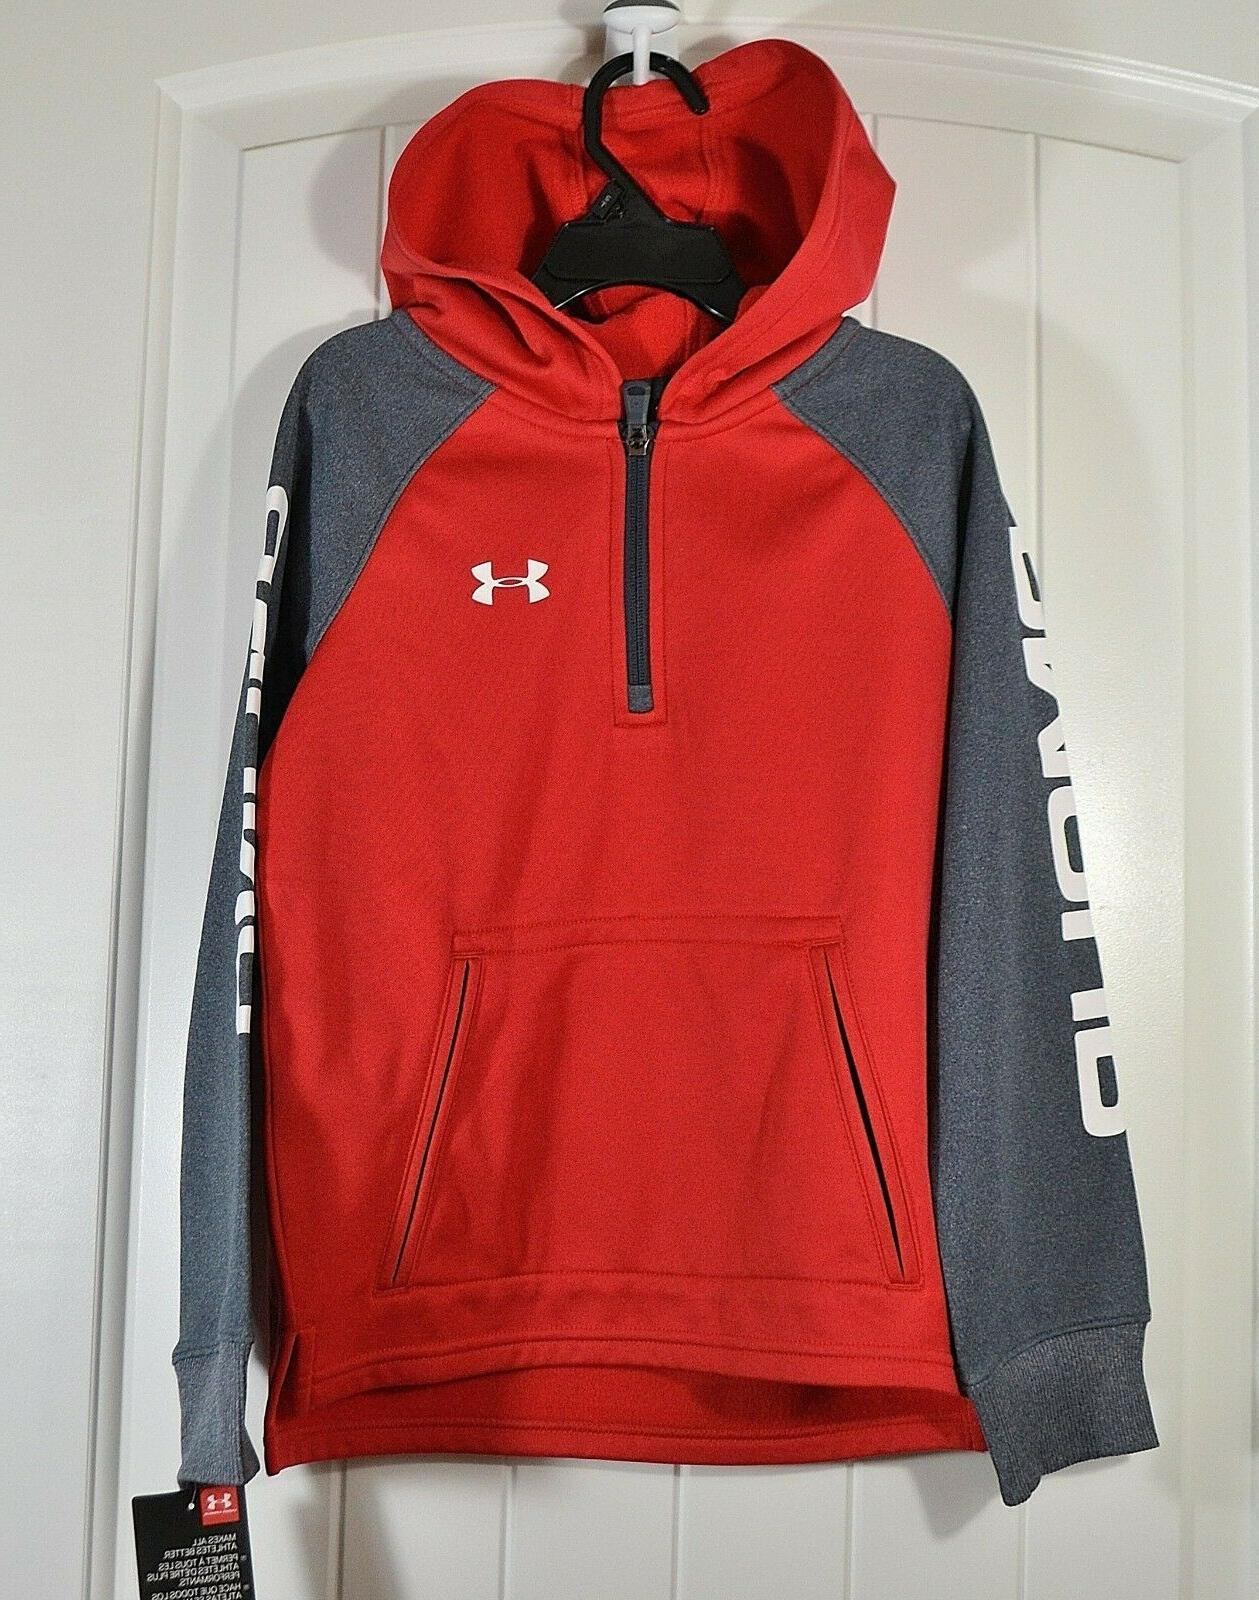 nwot boys kids youth red gray zip